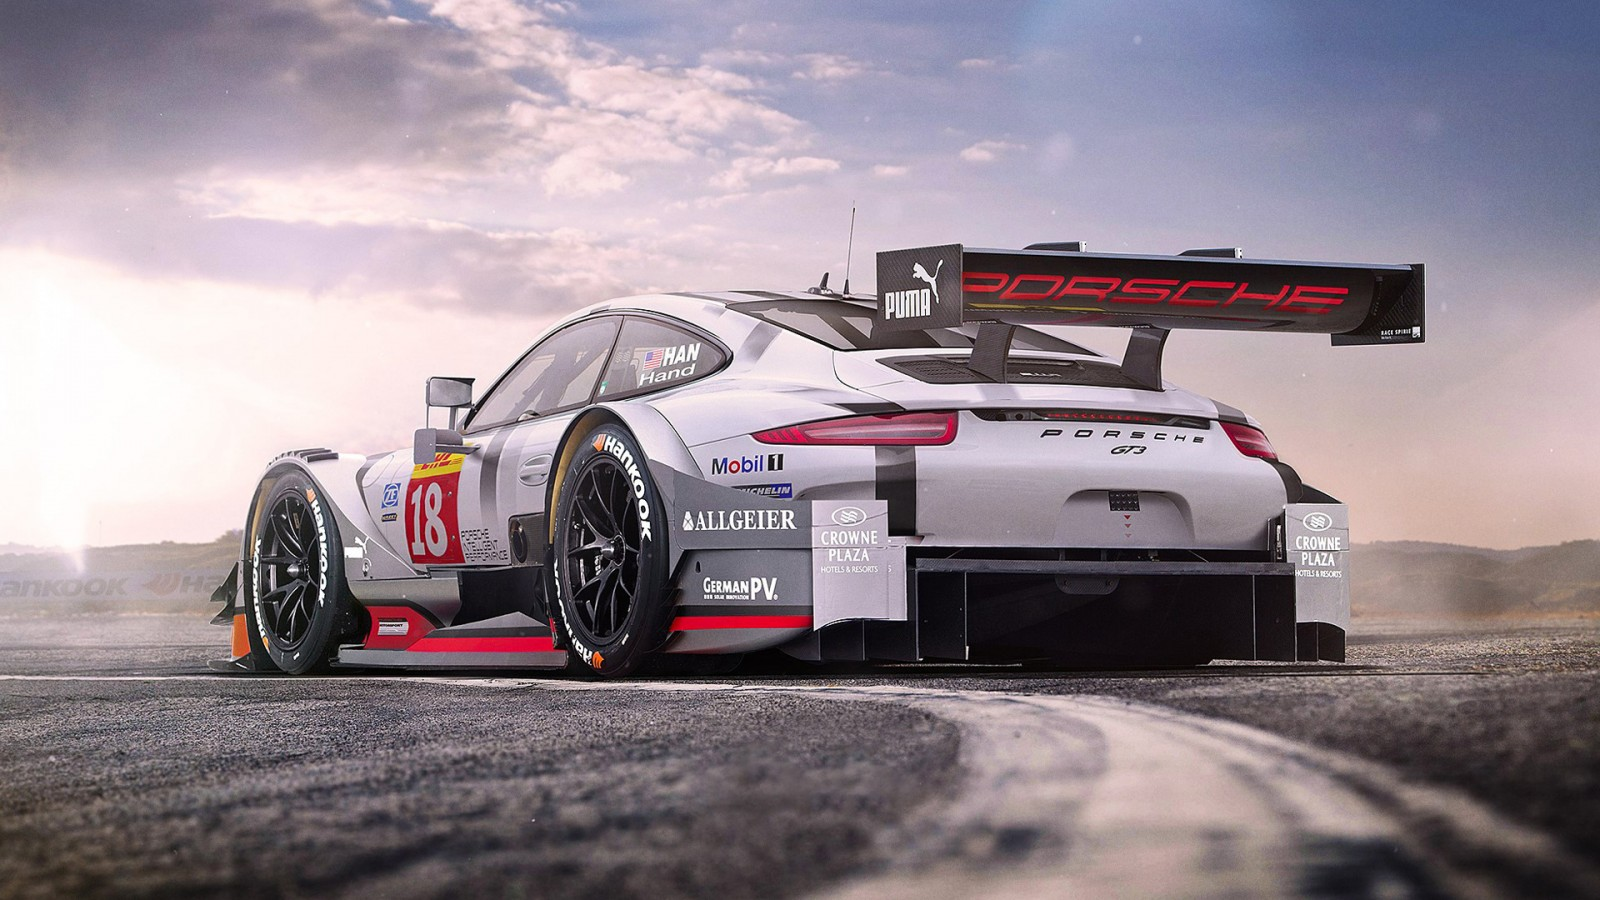 chevrolet racing logo with Porsche 911 Gt3 Race Car Wallpapers on Porsche 911 gt3 race car Wallpapers also Red Bull Racing F1 Team 2018 further Corsa Performance Intake Kit mp1449 besides Blog Post as well Dodge Demon Banned Drag Racing Nhra.